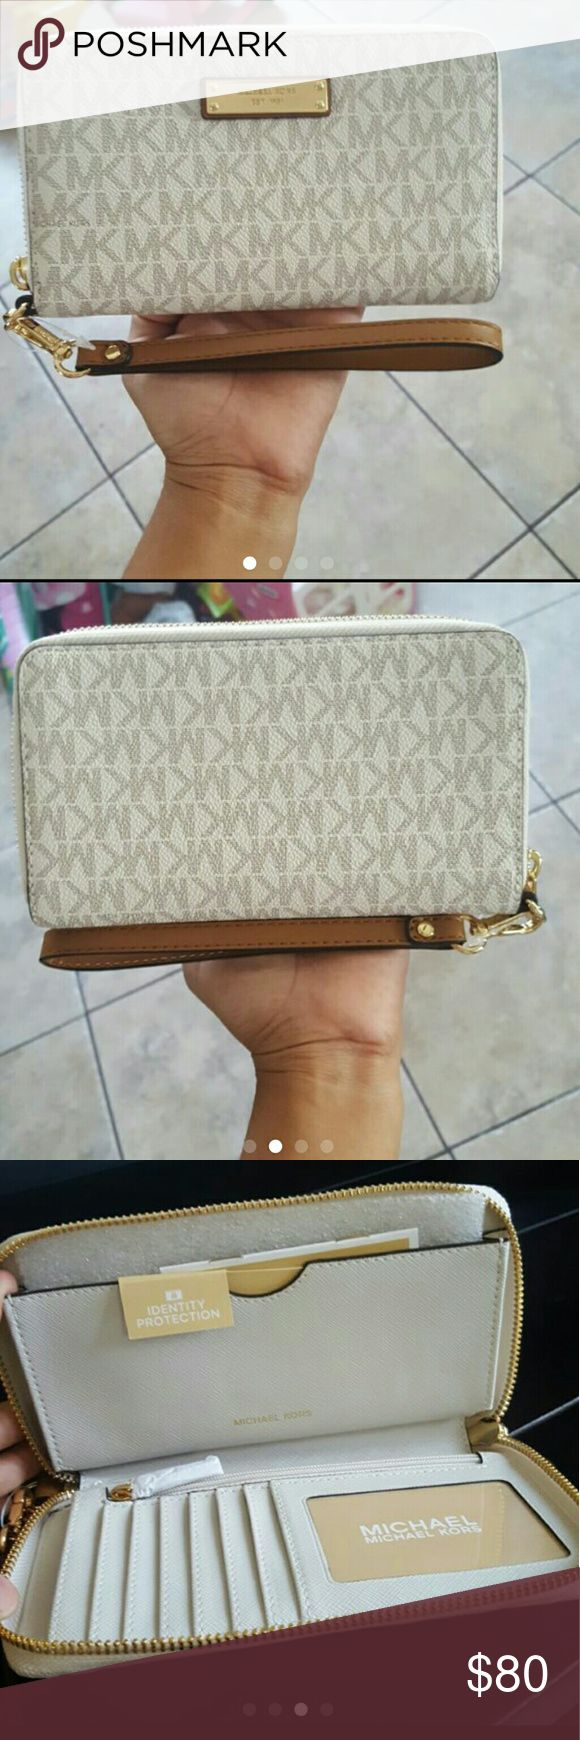 NWT Michael Kors Large Wristlet Wallet New with tags. Michael kors large wristlet wallet. Compatible with most phones like the iPhone plus Prefer to sell on M for less Michael Kors Bags Wallets